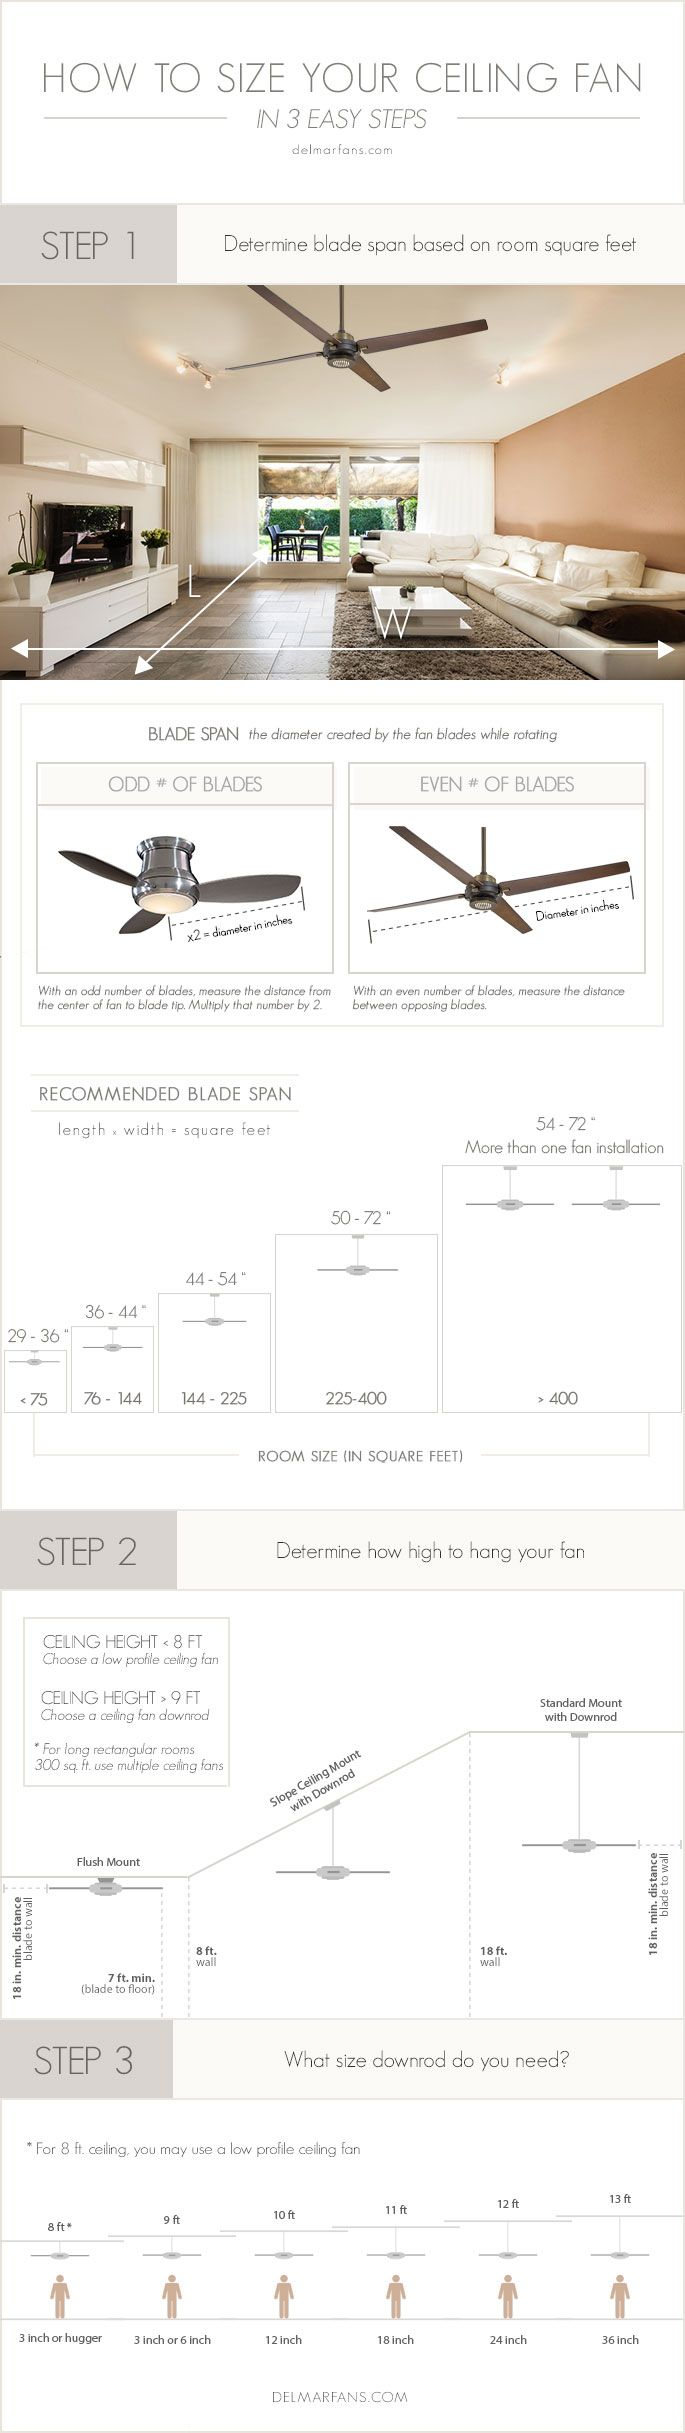 What Size Ceiling Fan Do You Need? Check out our How to Size Your Ceiling Fan in 3 Easy Steps Infographic!